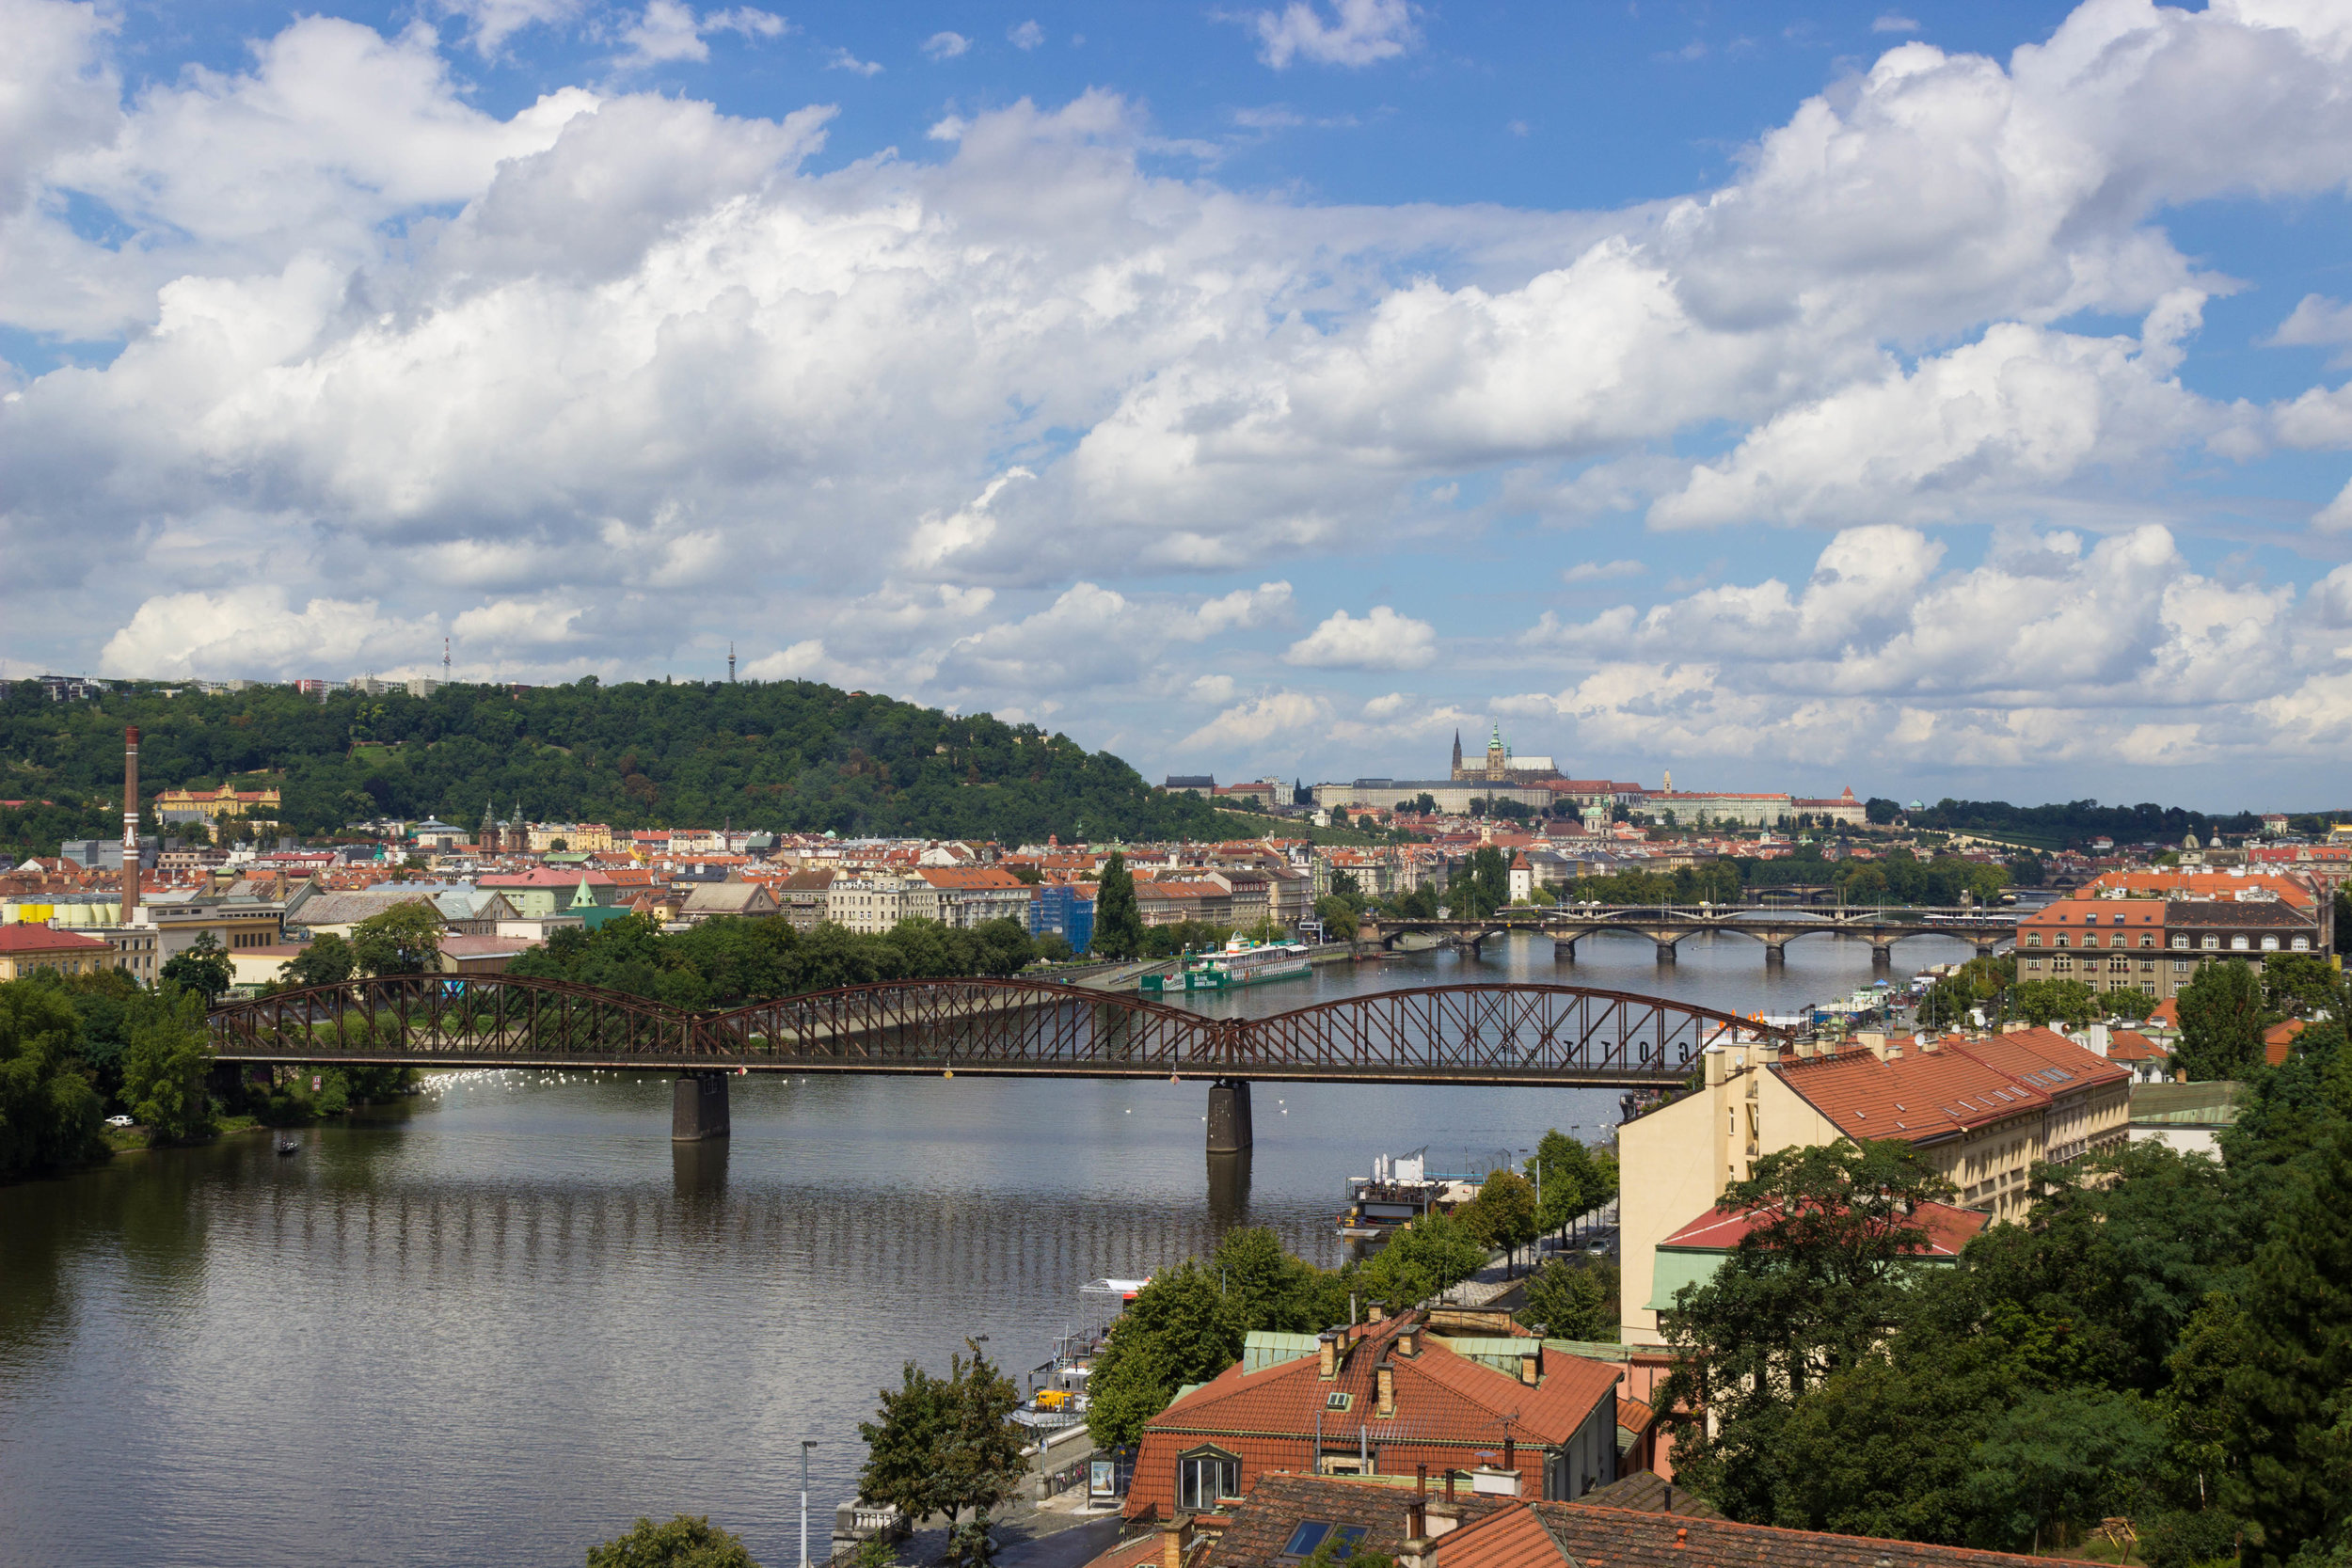 View of Vltava River from Vysehrad